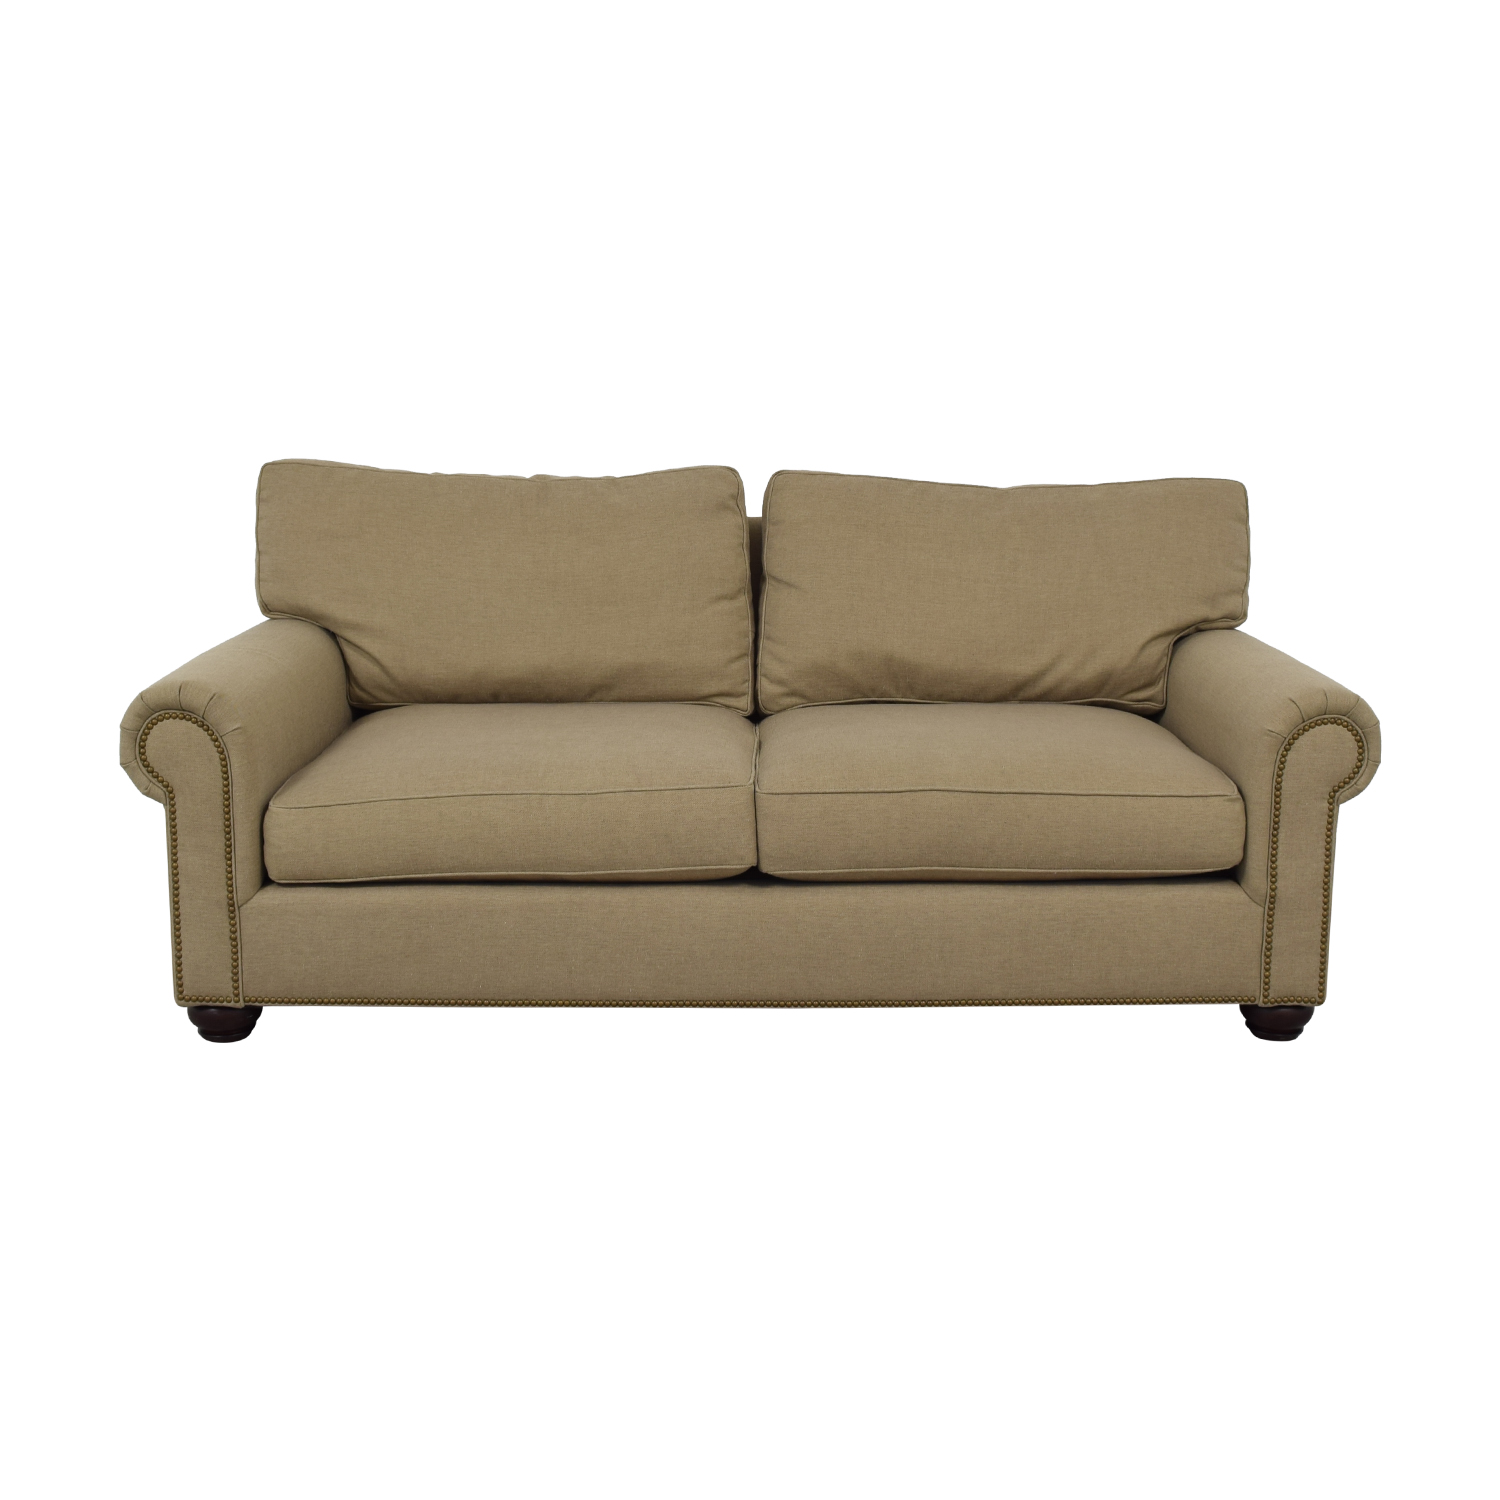 Pottery Barn Webster Beige Two-Cushion Couch / Classic Sofas